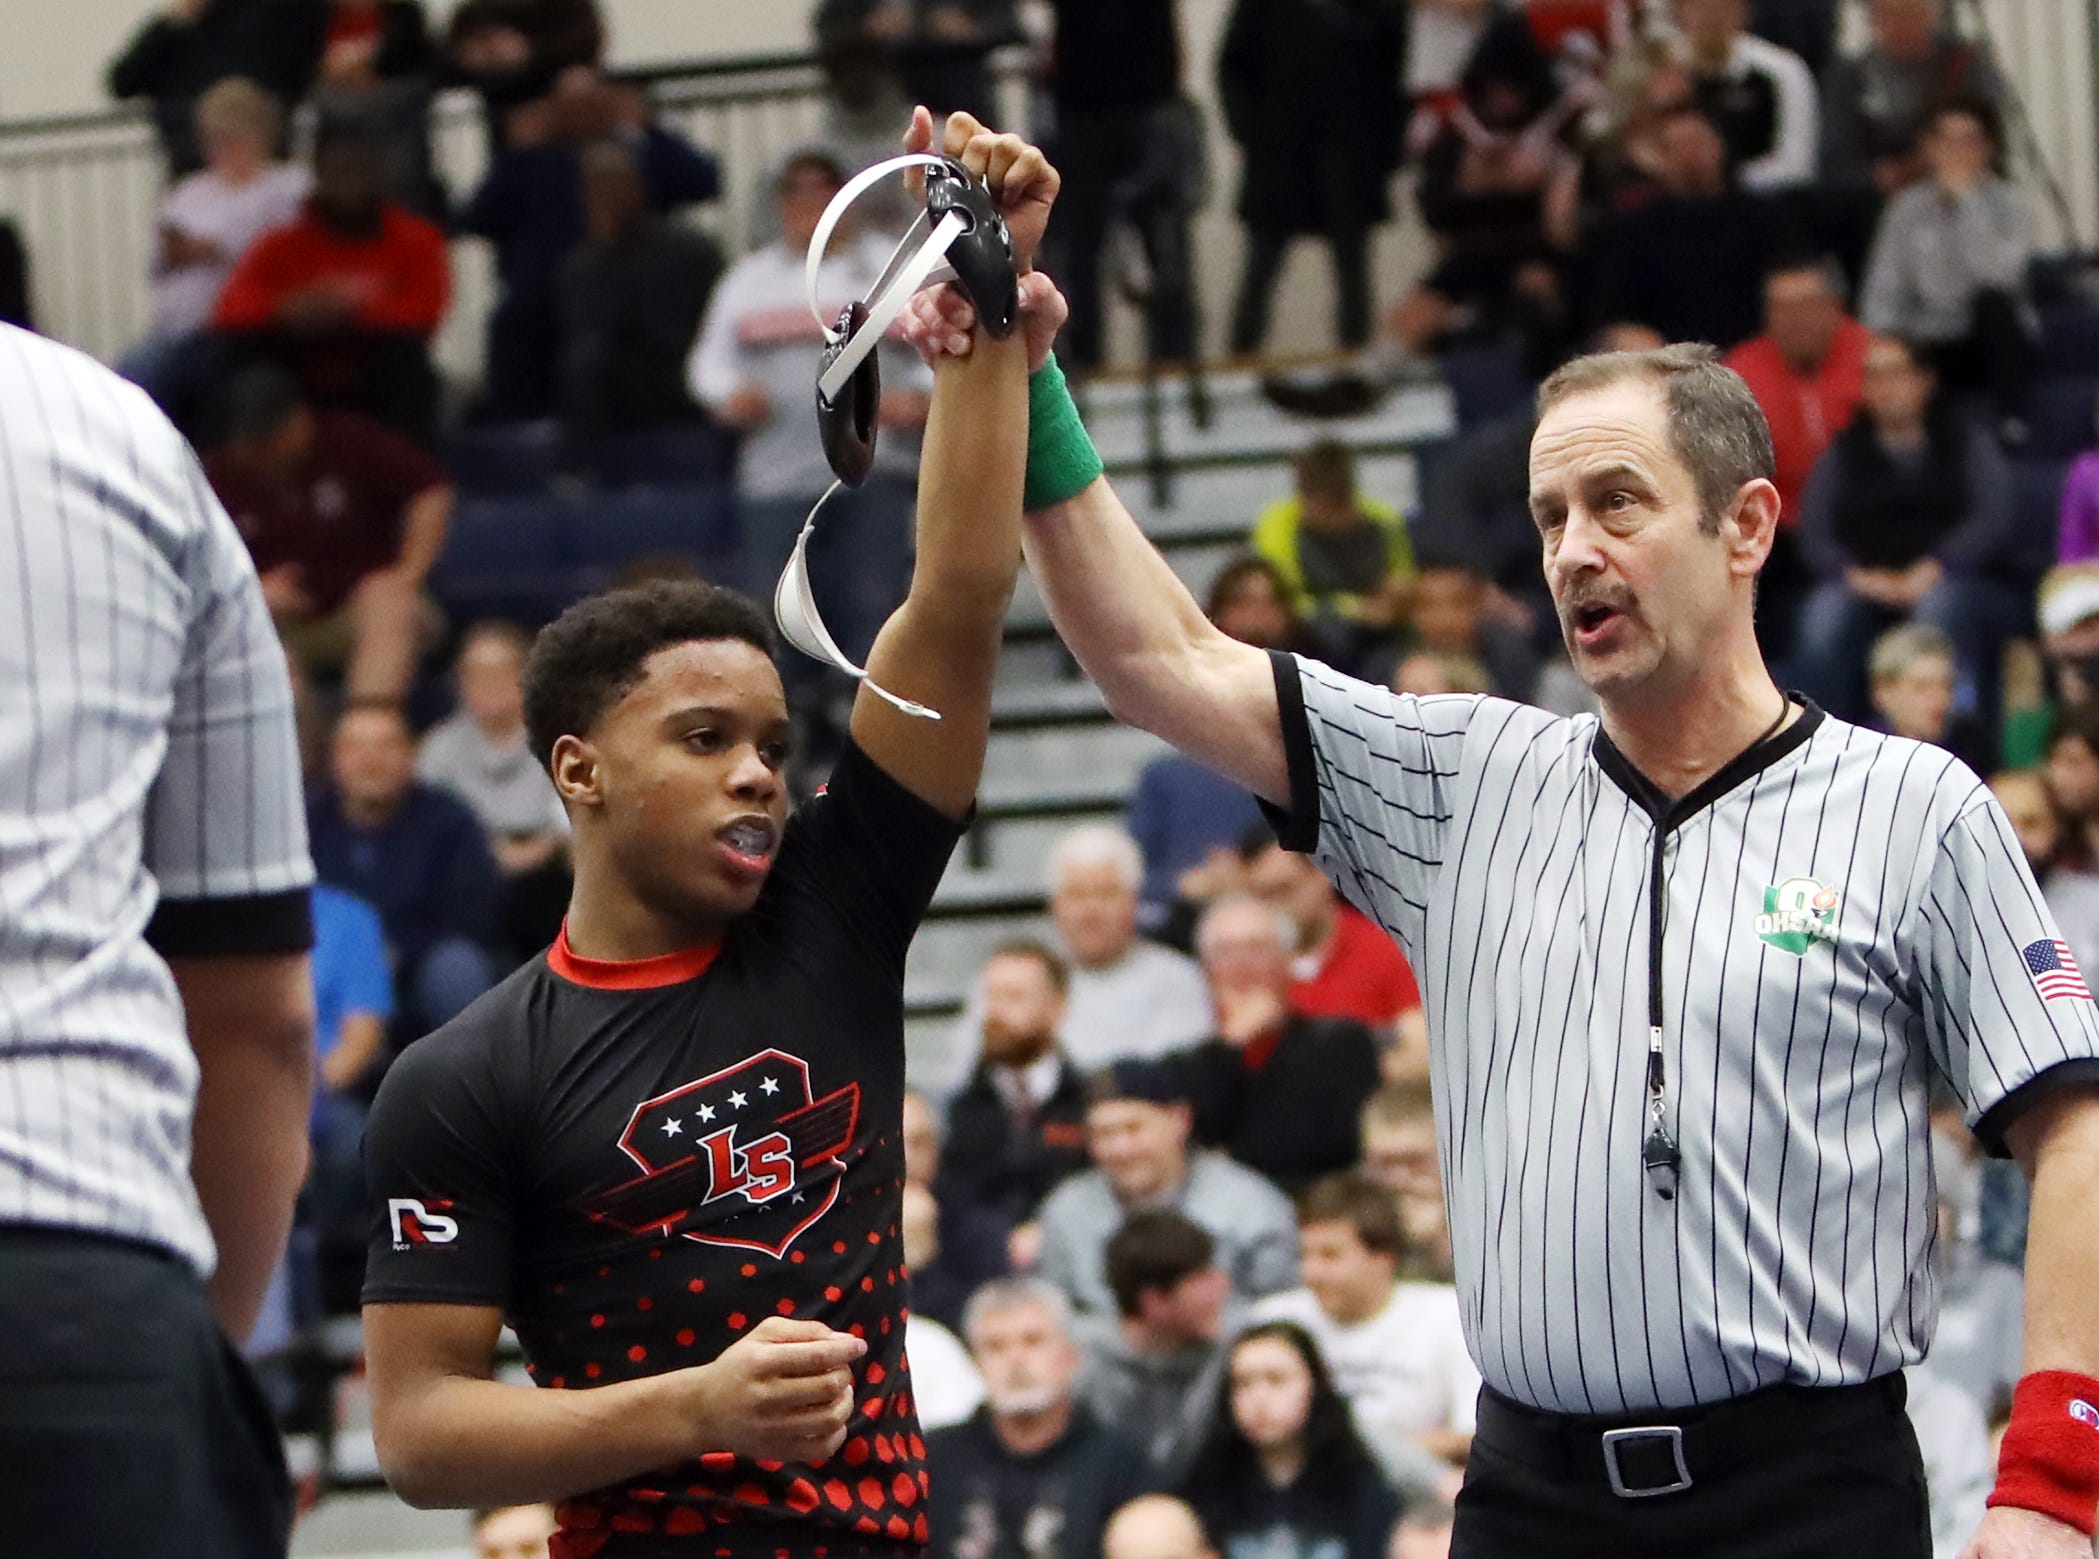 Antoine Allen from La Salle defeated Jabari Thomas from Fairfield to win the 126 lbs. championship at the OHSAA Division I Southwest district finals at Fairmont High School Trent Arena.